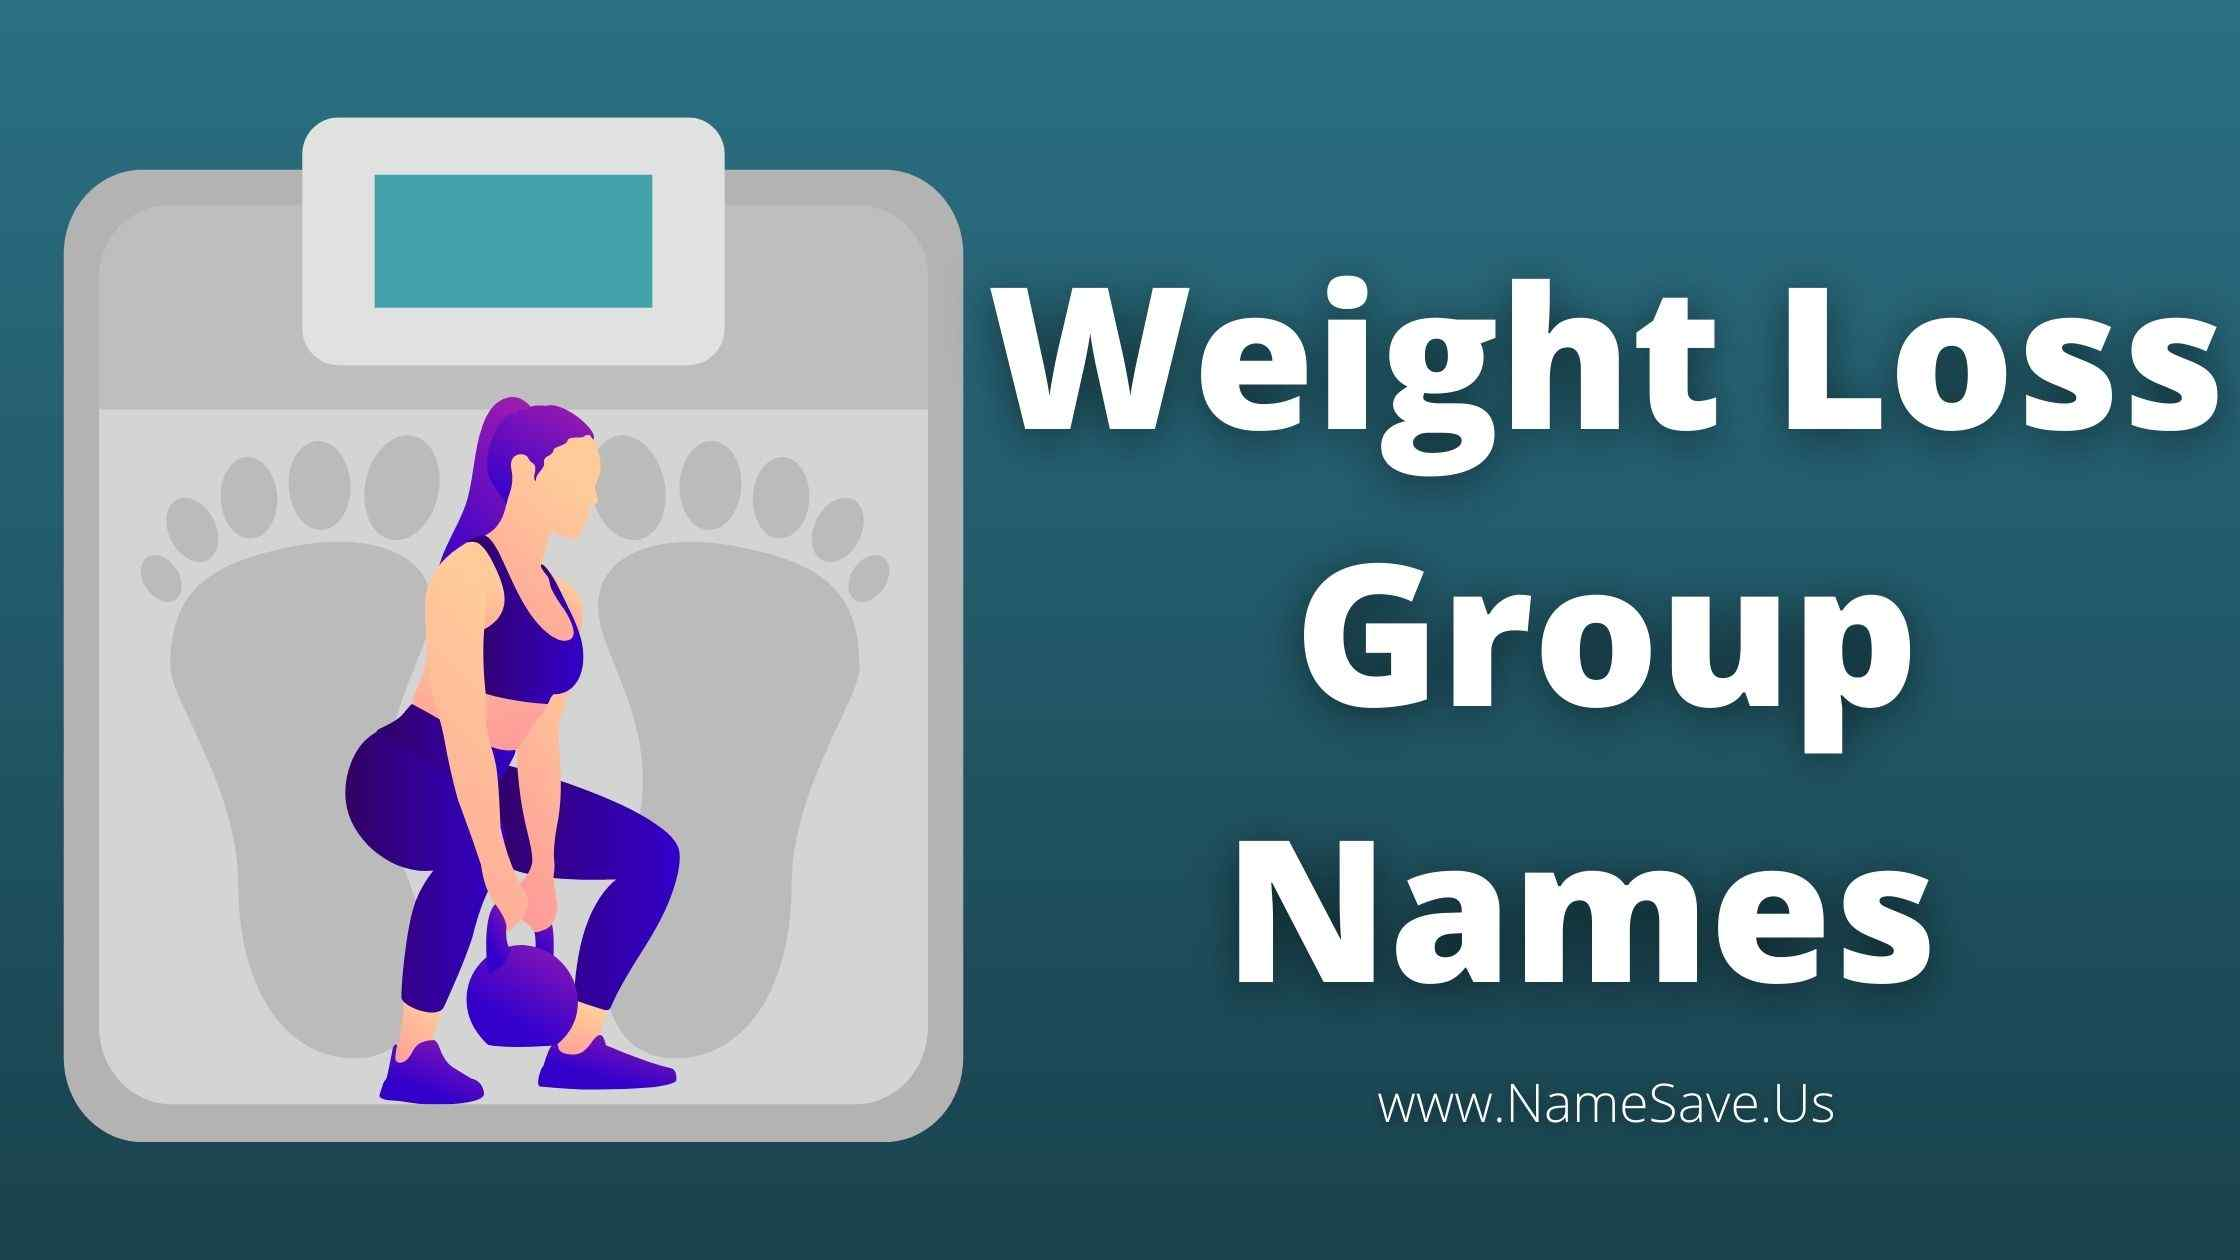 Weight Loss Group Names